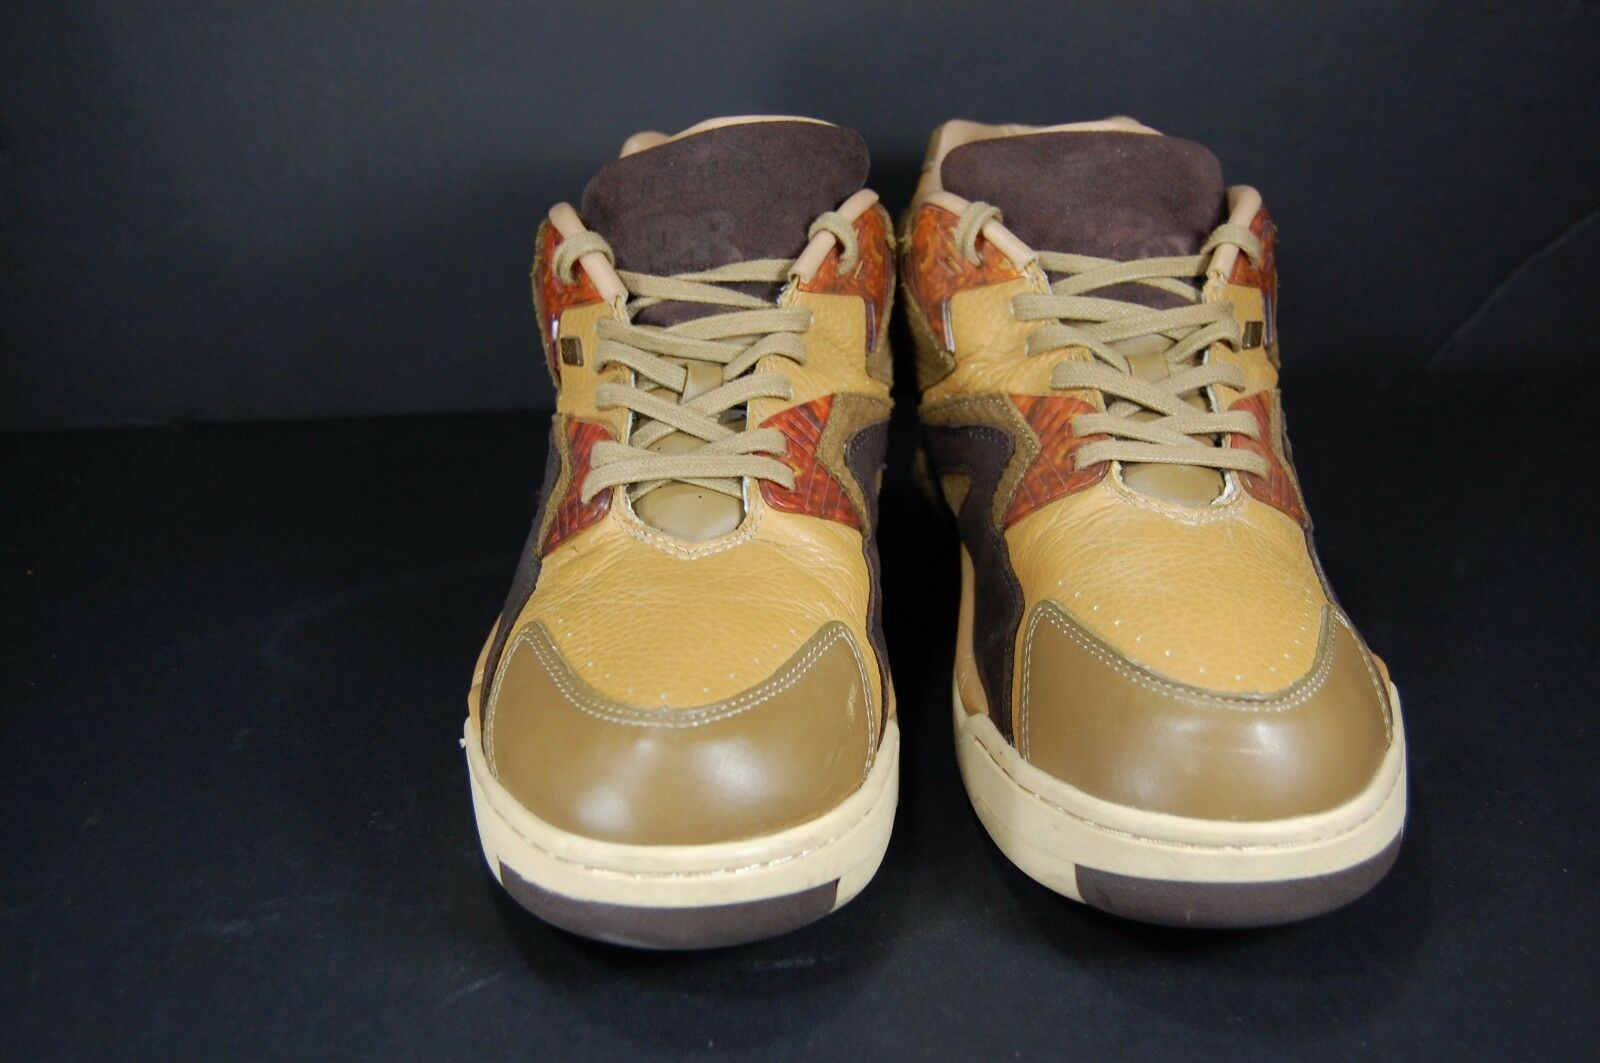 new style b0e2f 7bb50 ... LIMITED EDITION British Knights DRX Mono Mid Mid Mid Peanut Butter US  14 68690e ...